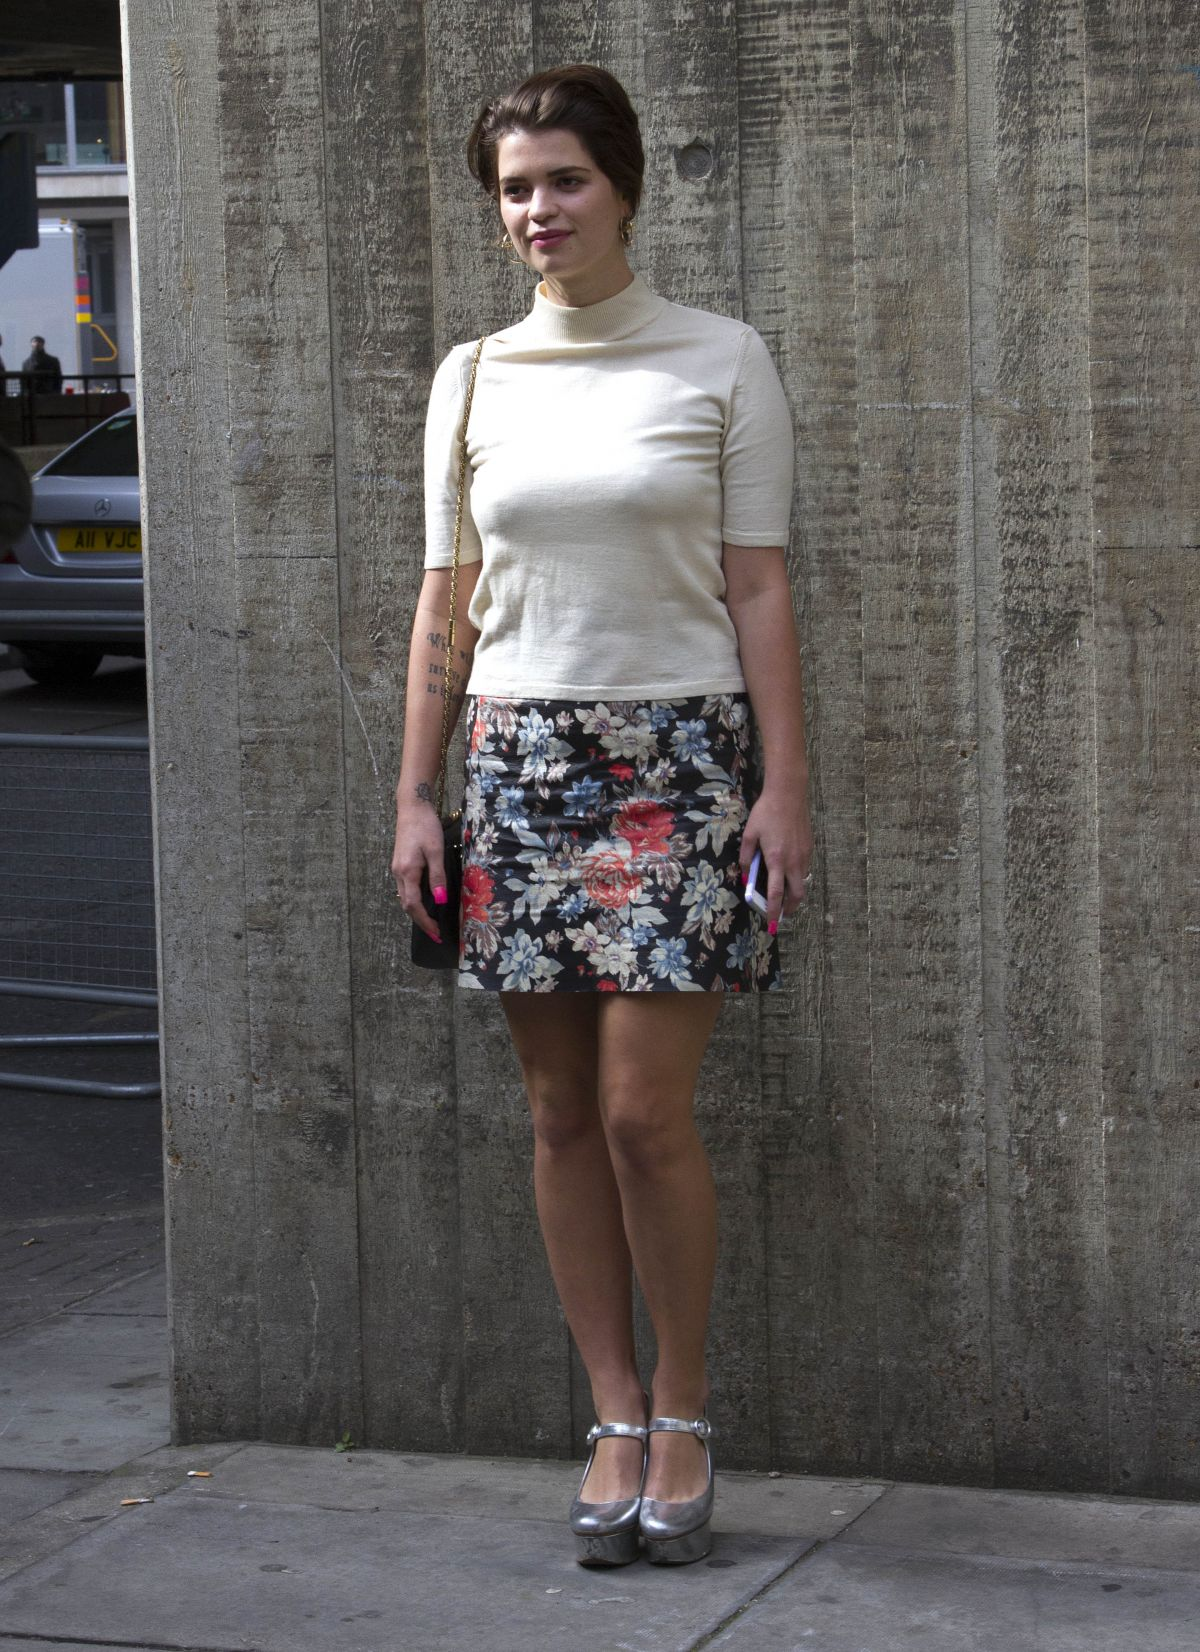 PIXIE GELDOF at the Vogue Festival 2014 in London